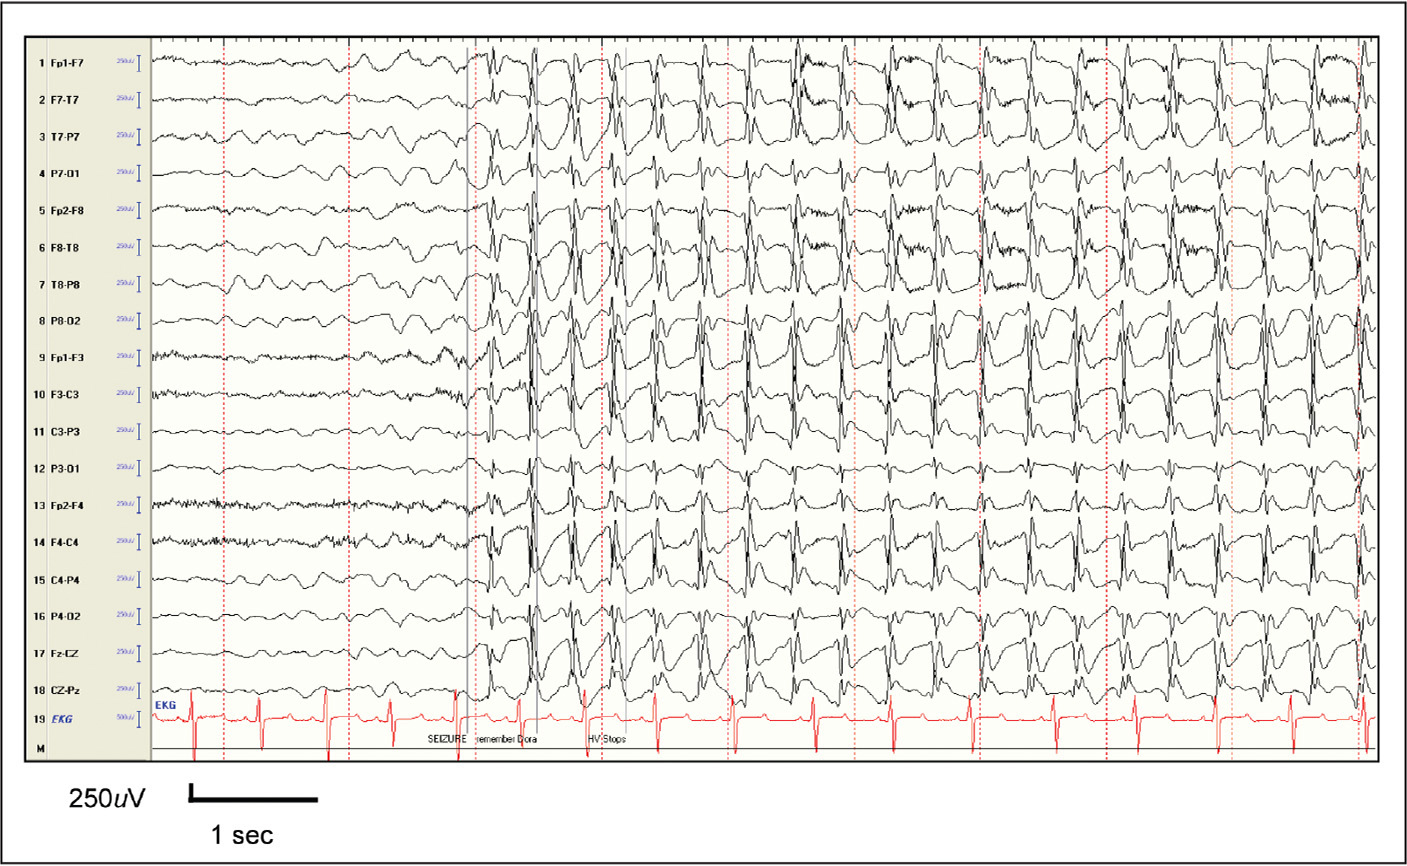 Ictal discharges in childhood absence epilepsy showing a 5-year-old patient who stopped hyperventilating due to 3 Hz spike-and-wave discharges. She had no memory of the word given to her during the induced-absence seizure.